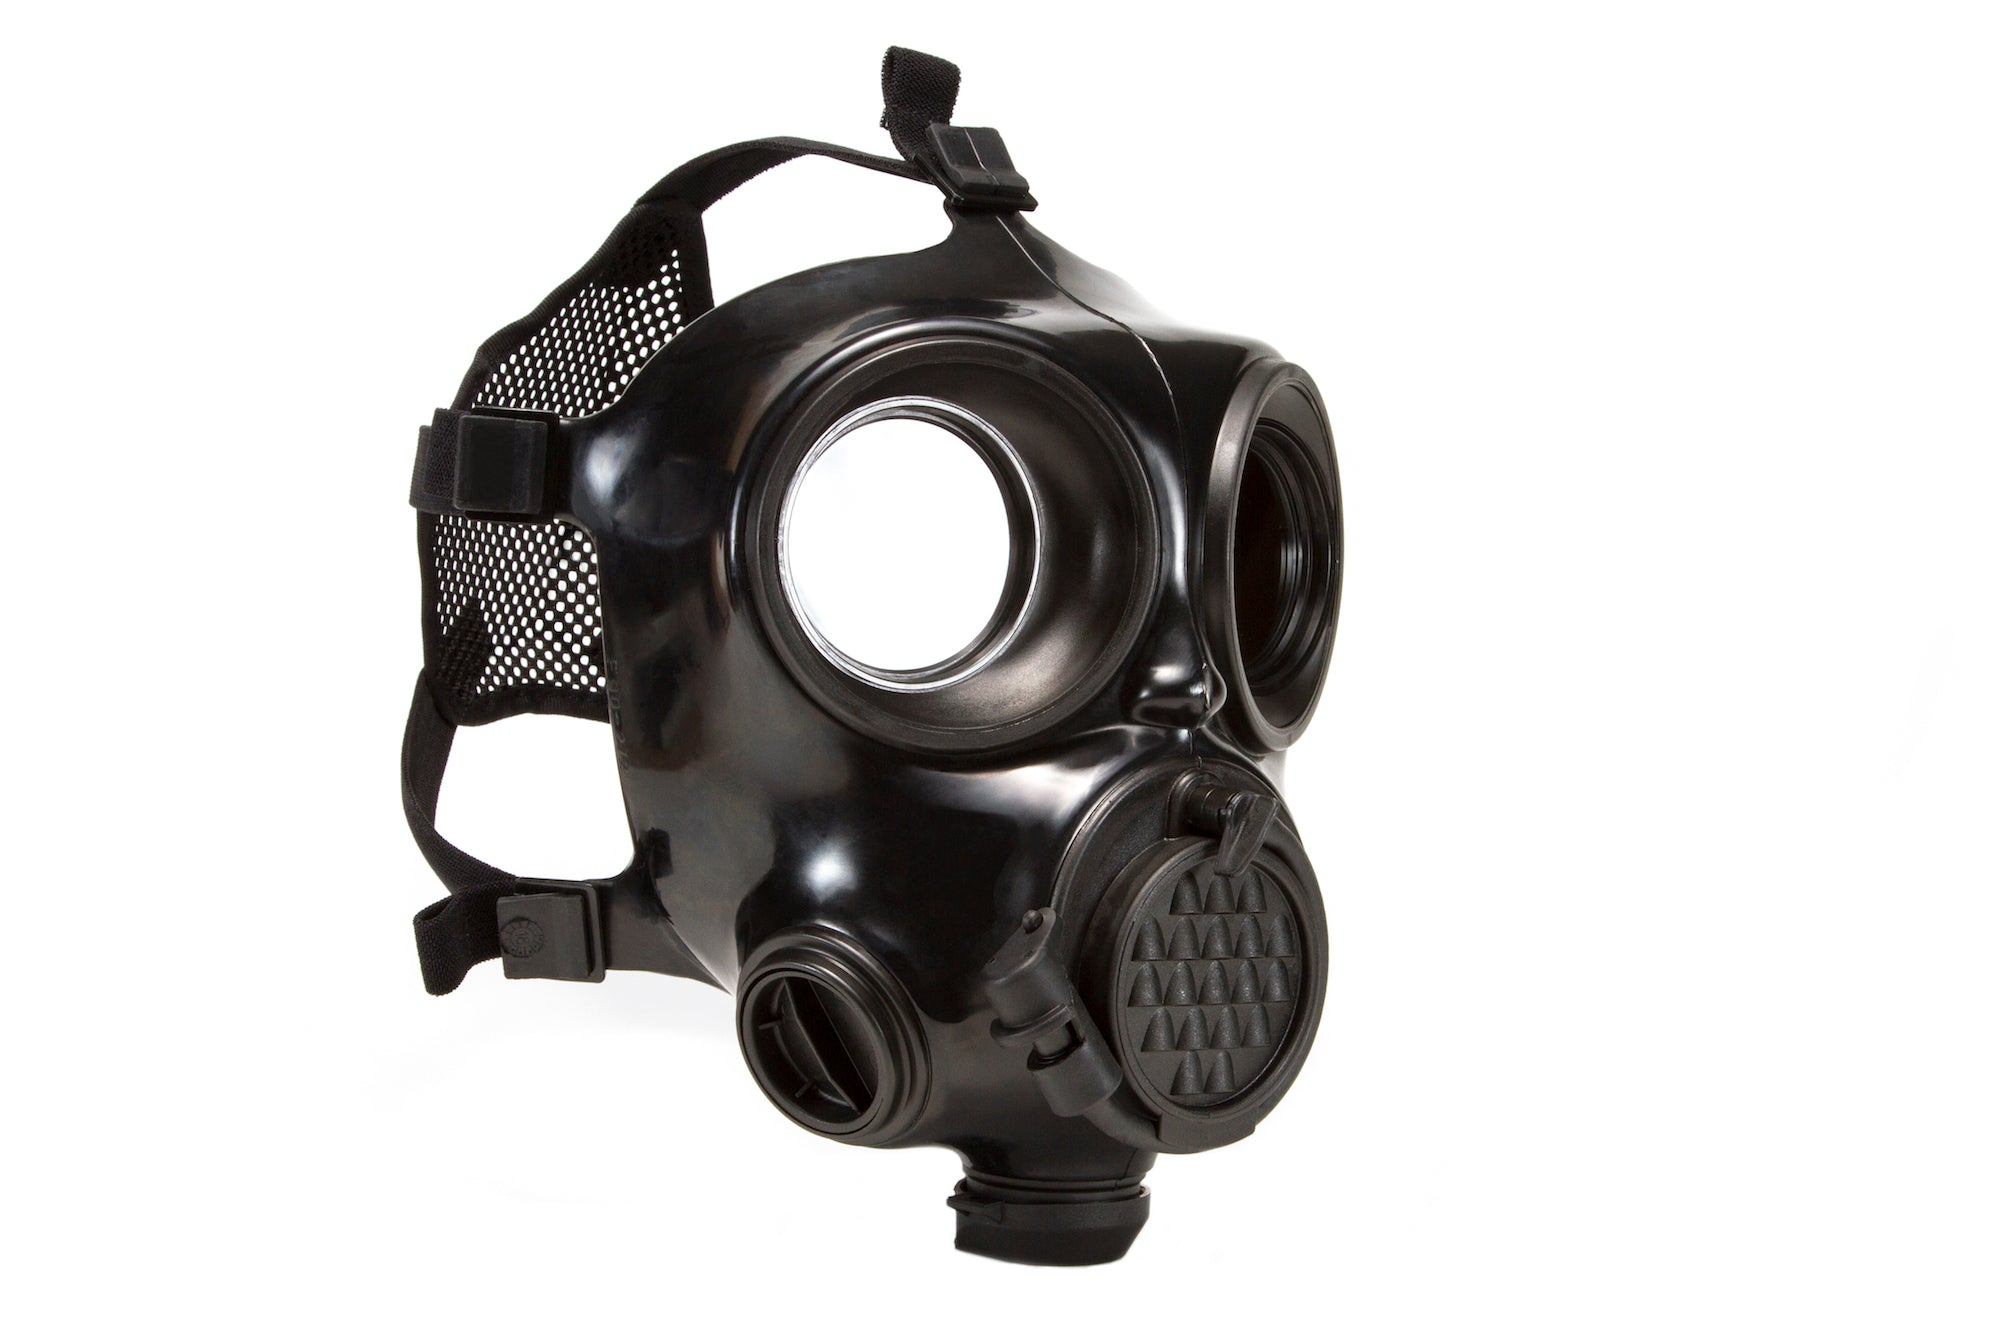 CM-7M Military Gas Mask without filters